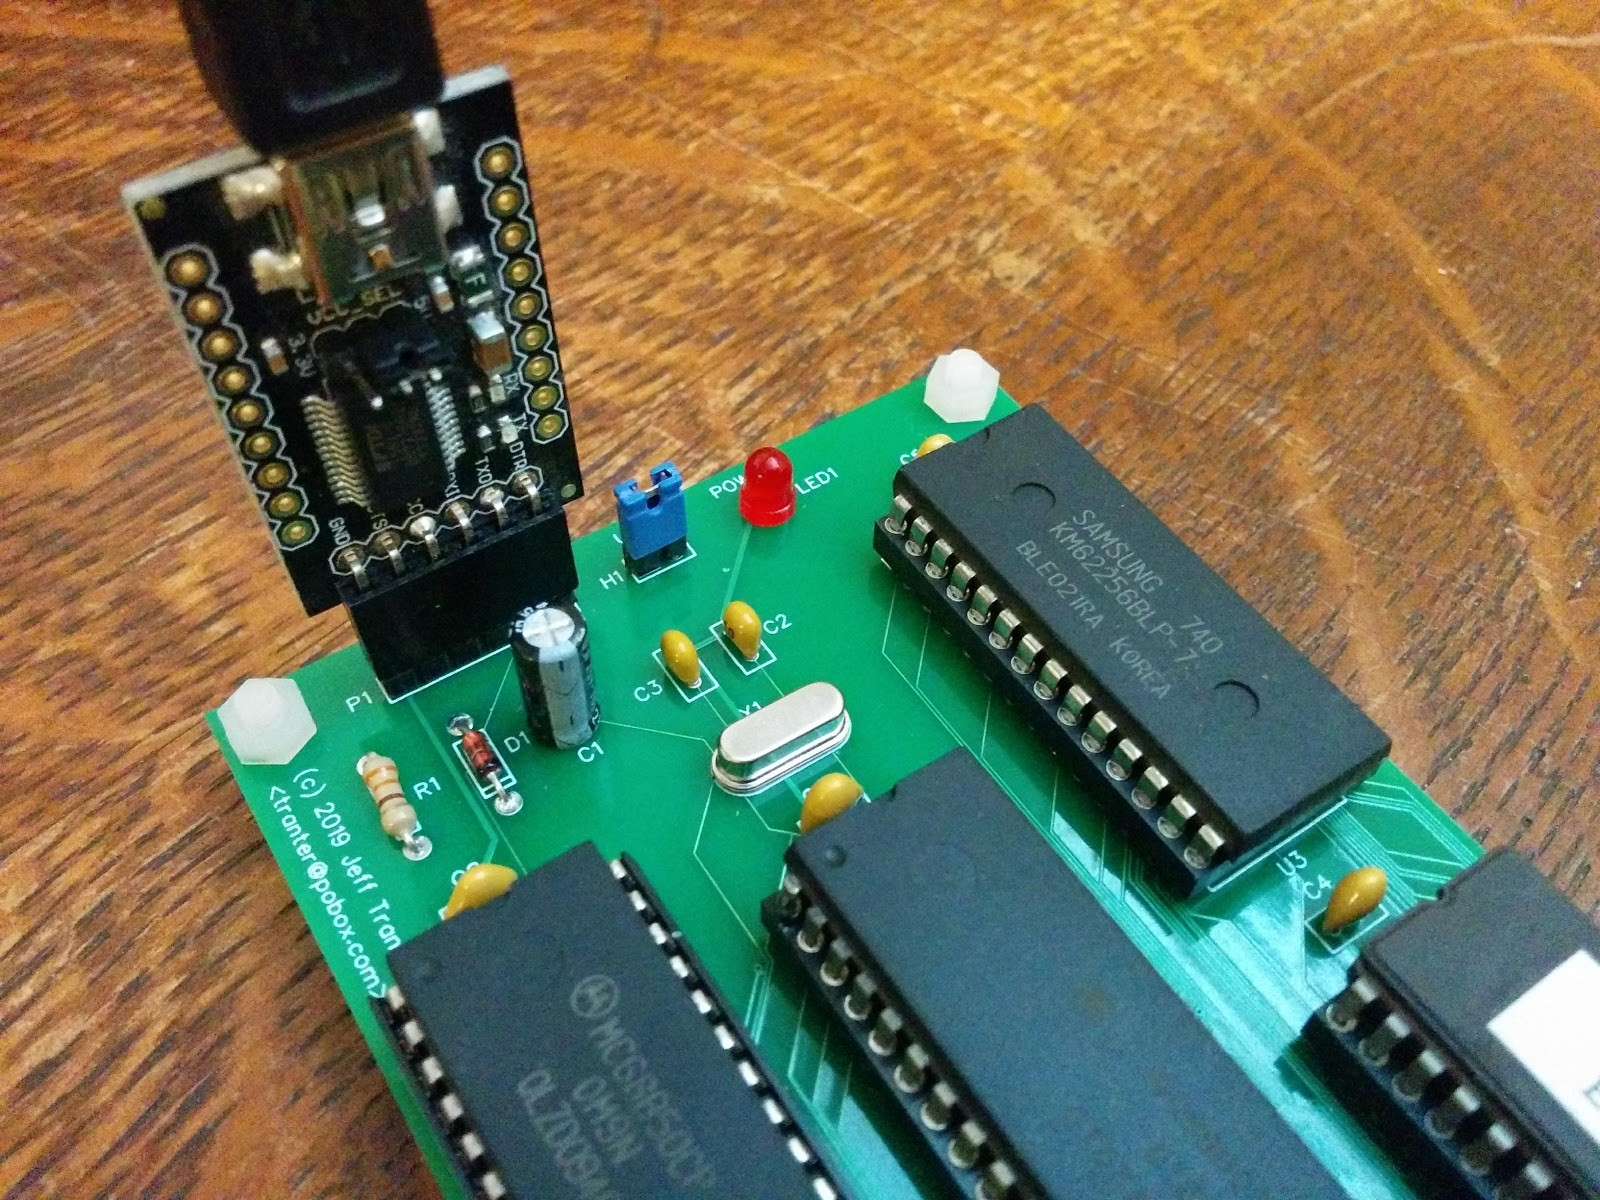 A 6809 Single Board puter Disassembler and Thoughts on the 6809